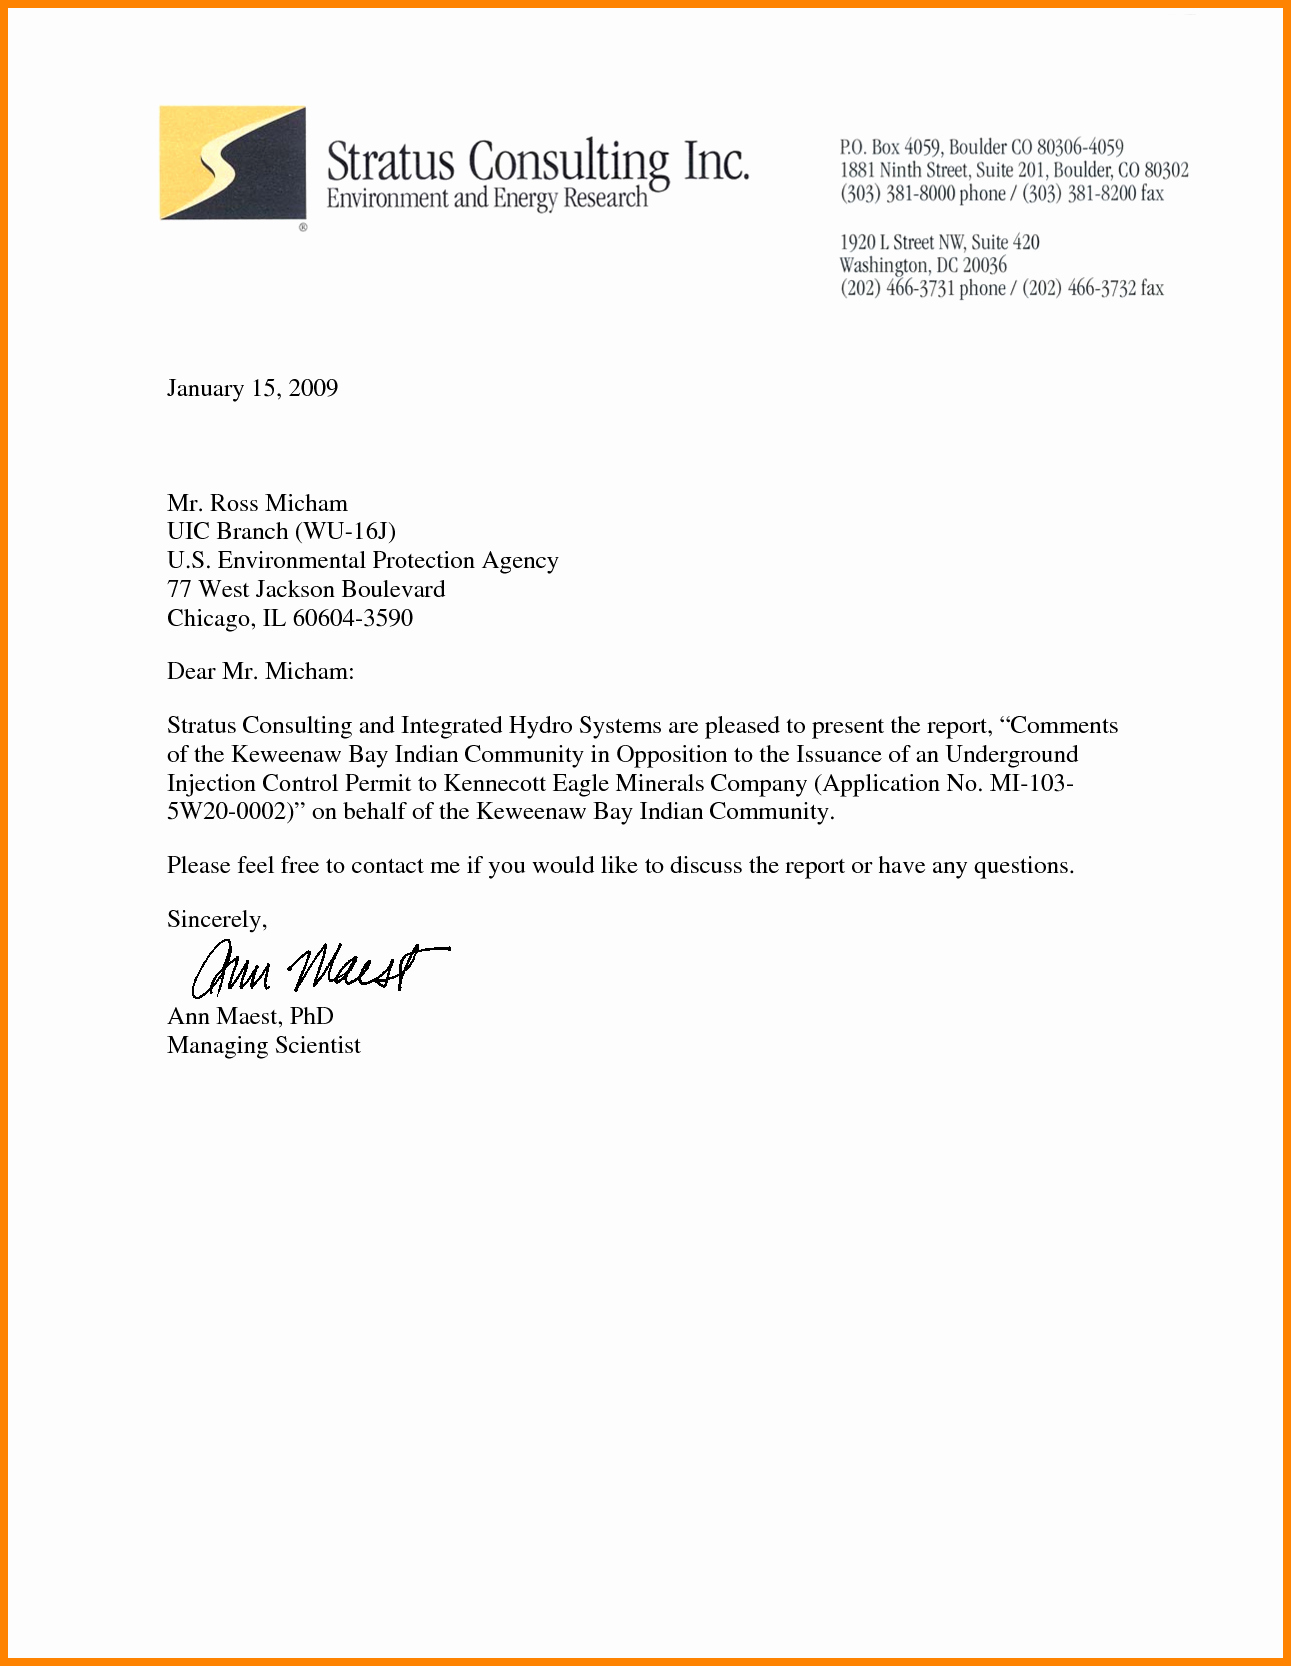 Business Letter format Template Word Inspirational Business Letterhead format Business Letterhead Examples